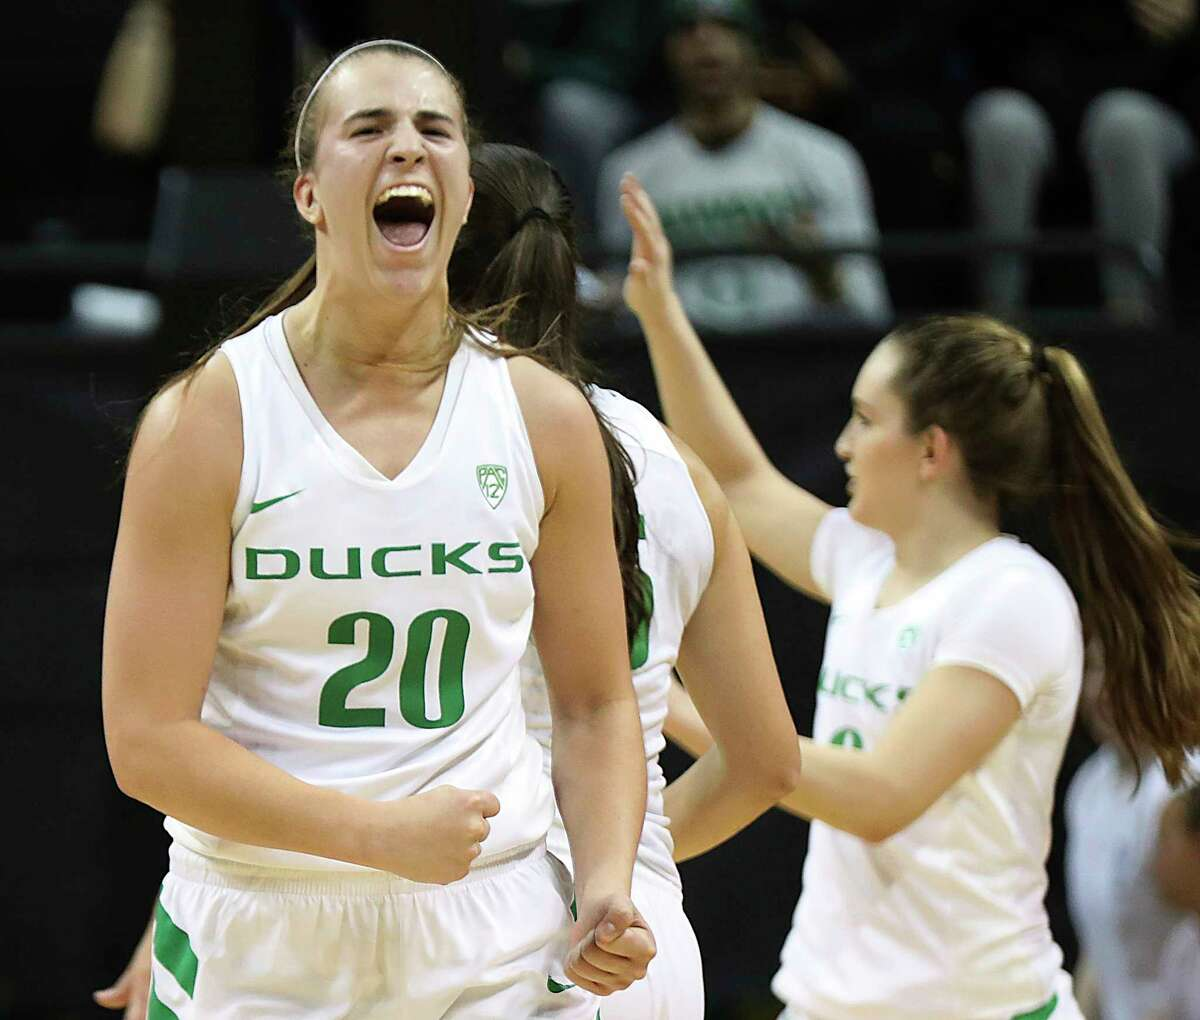 Sabrina Ionescu, G, Oregon By now, Sabrina Ionescu's status as the NCAA's all-time triple-double leader (with 18) is well known. Simply put, the junior guard is a generational talent. This year, she's averaging 19.9 PPG, 8.2 APG and 7.5 RPG - a stellar, all-around stat line. Equally impressive is her efficiency: Ionescu shoots the ball at a 45 percent clip, and 43.3 percent from beyond the arc. She also has the toughness and grit to match her skills. As the best true floor general in the country, Ionescu could very well be the first player picked should she choose to enter the draft.